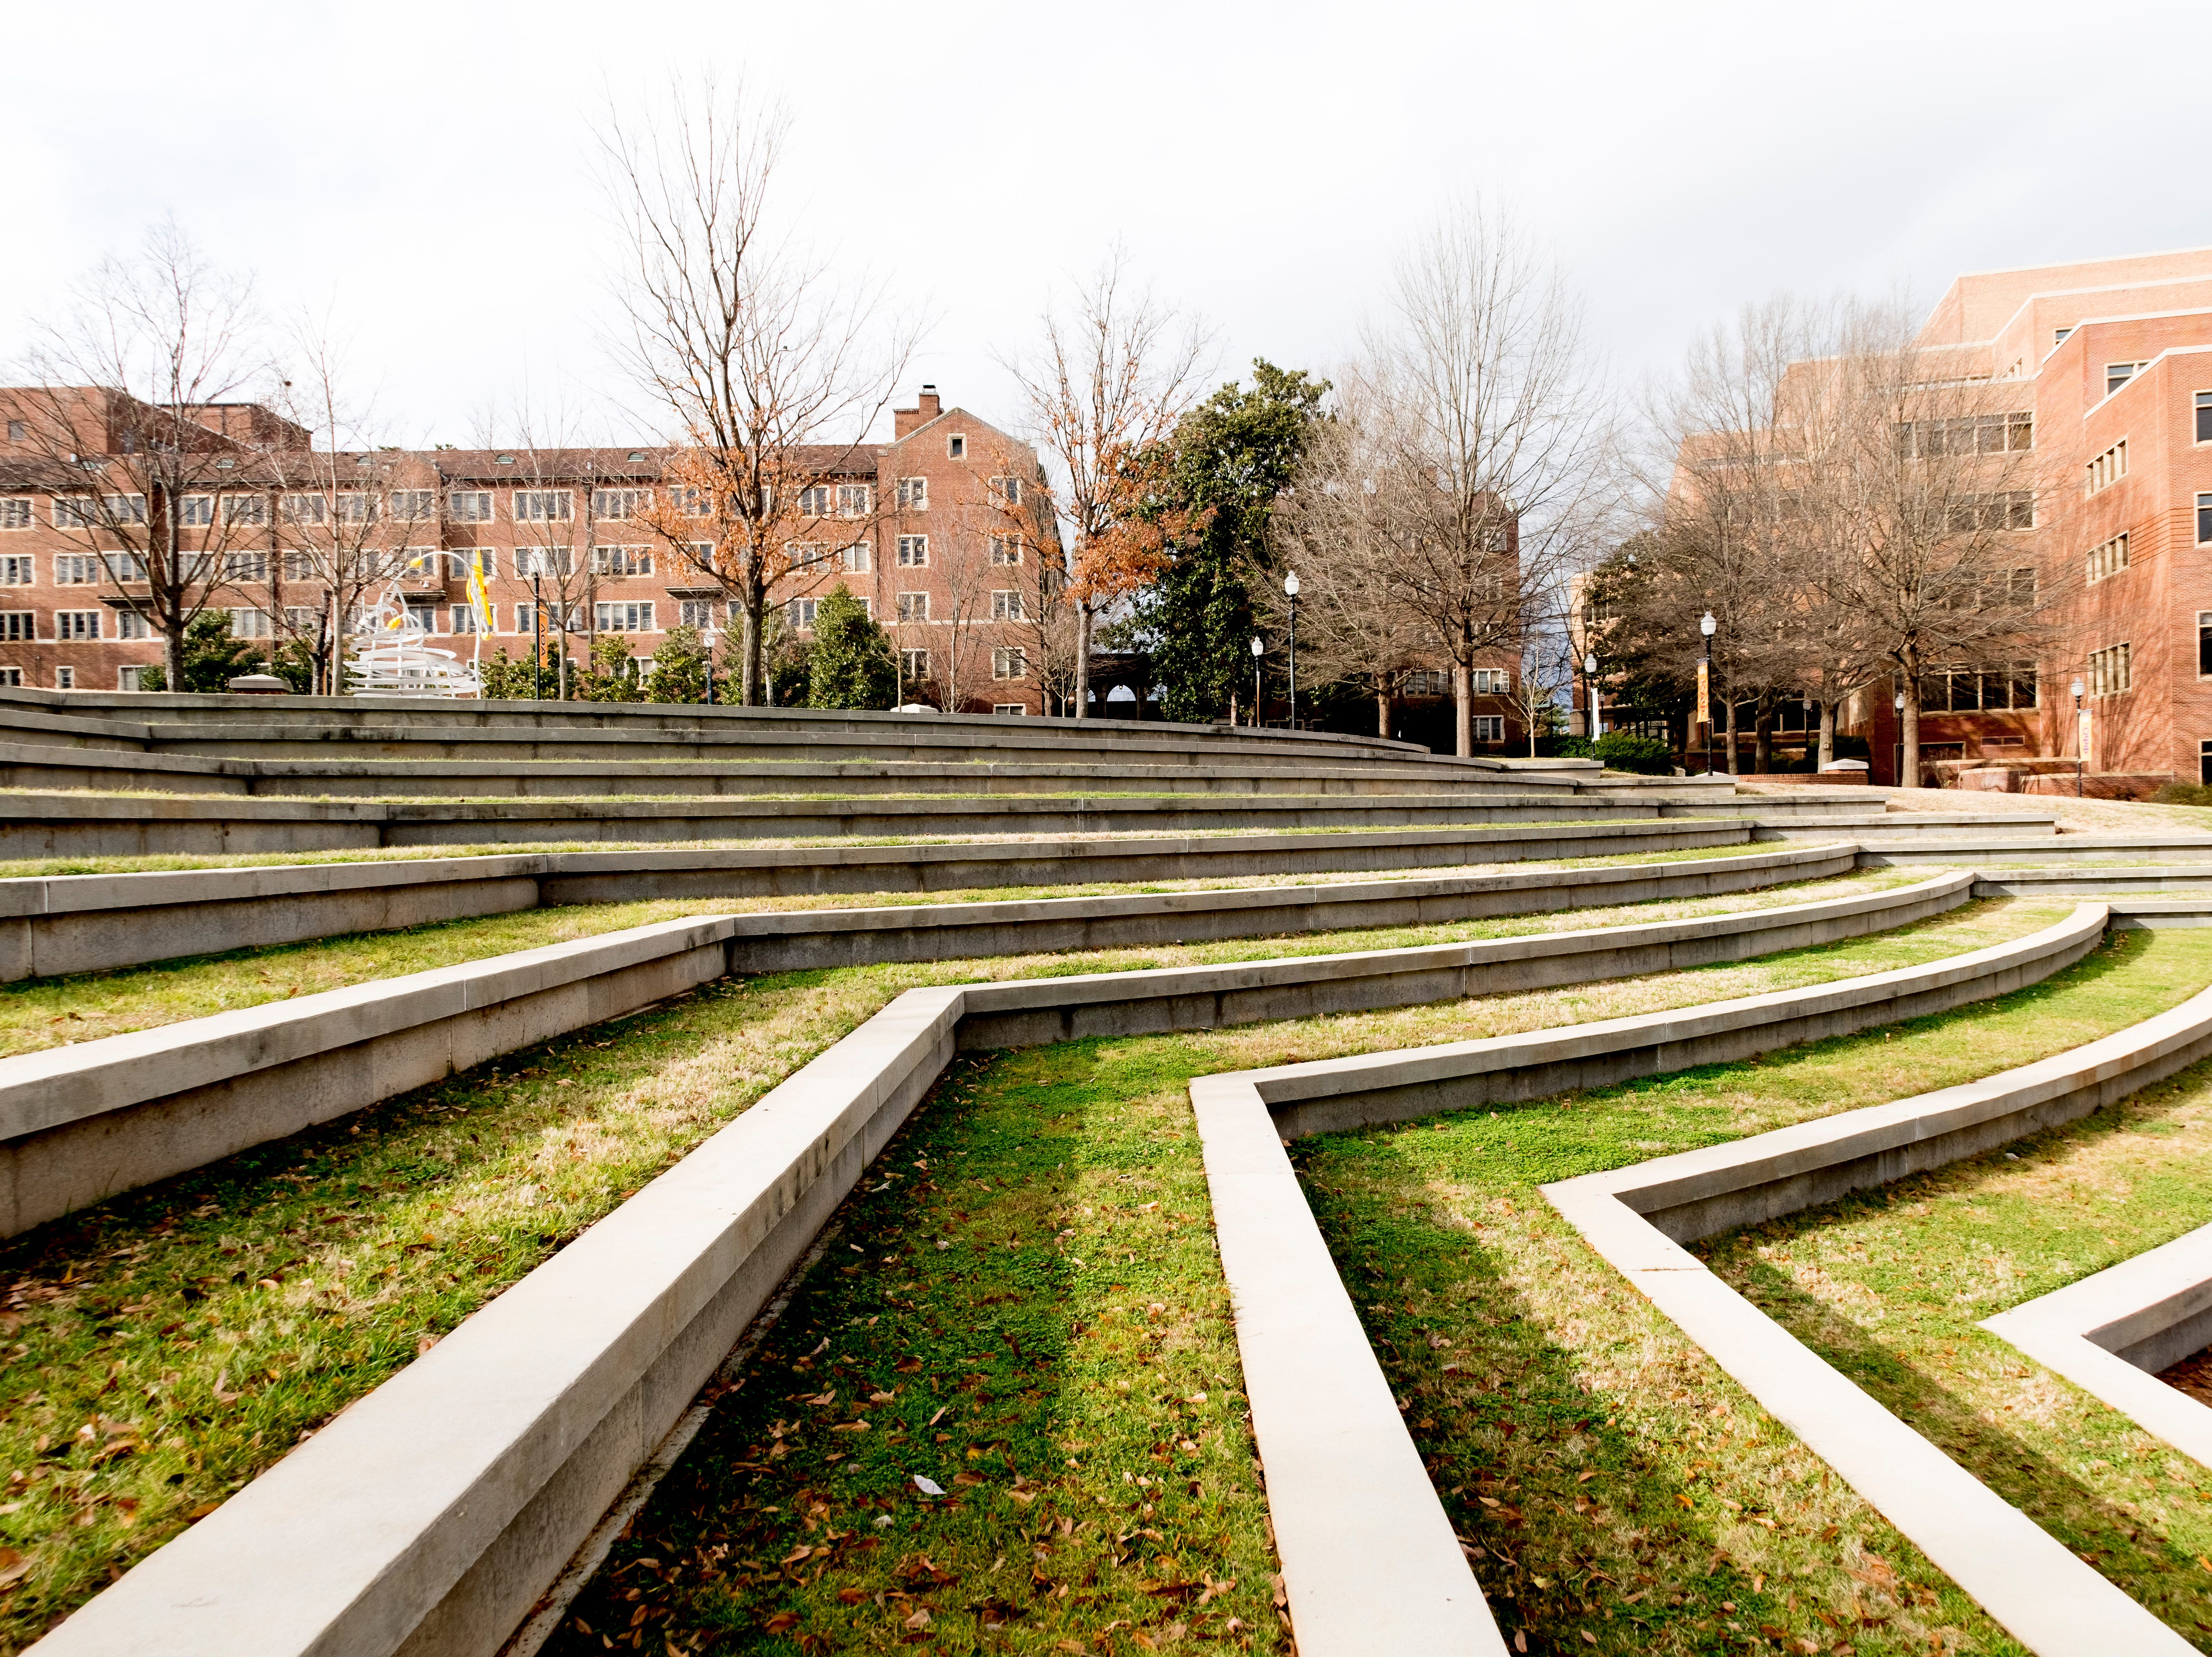 Humanities Amphitheater on the University of Tennessee campus in Knoxville, Tennessee on Tuesday, January 1, 2019.